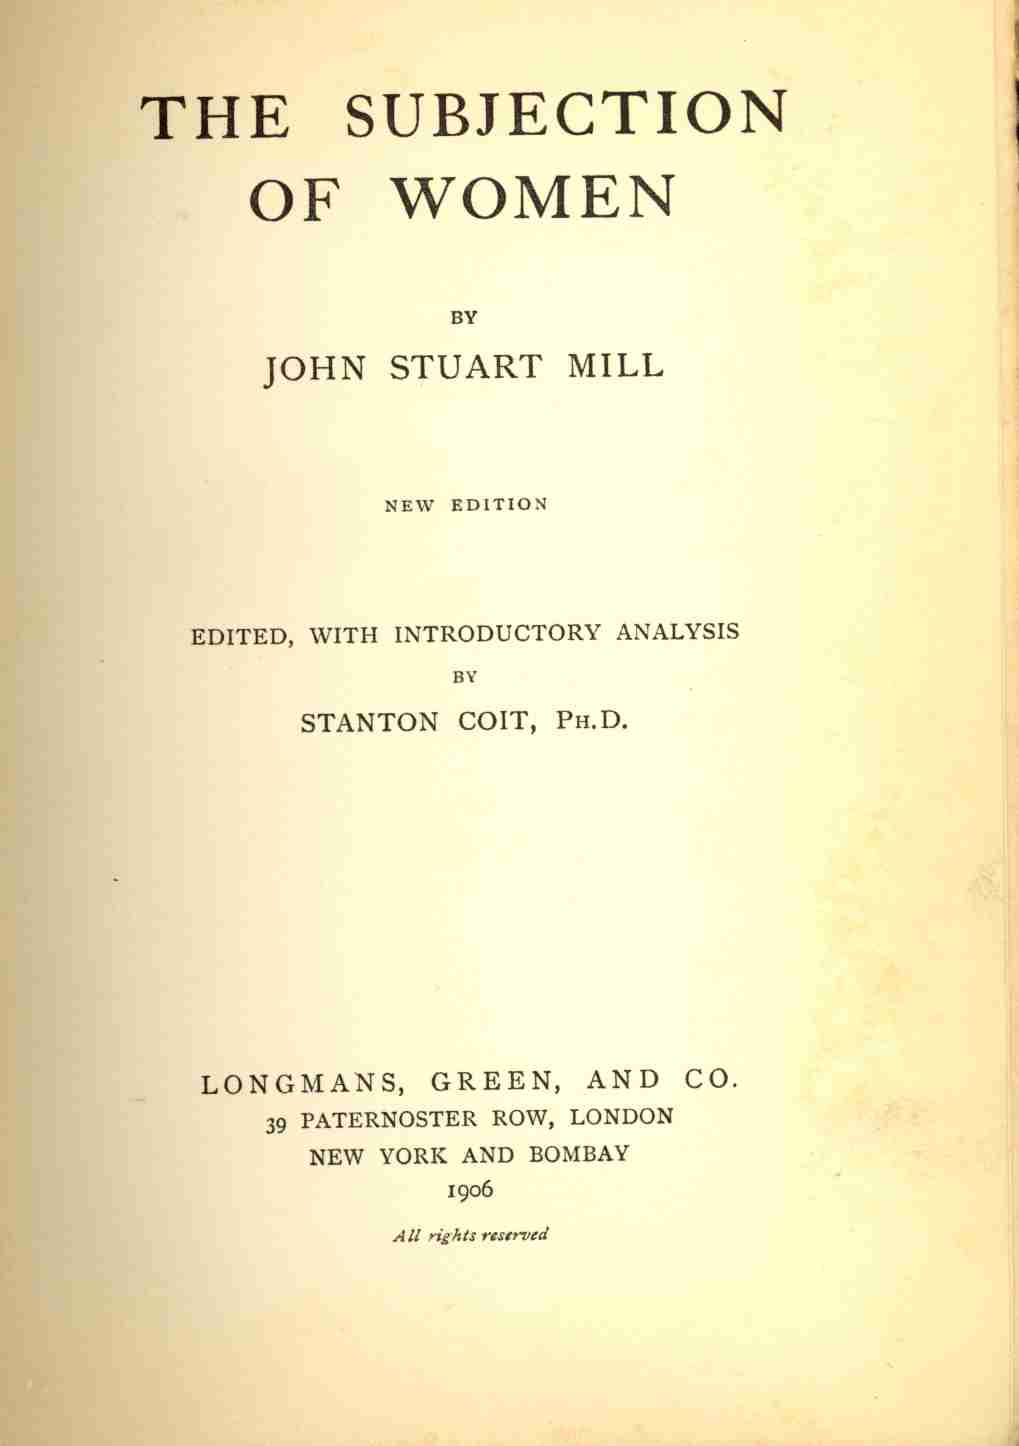 j s mills subjection of women essay J s mill (and harriet taylor mill), the subjection of women this was drafted in 1860-61 what are some features of mill's style in this essay.